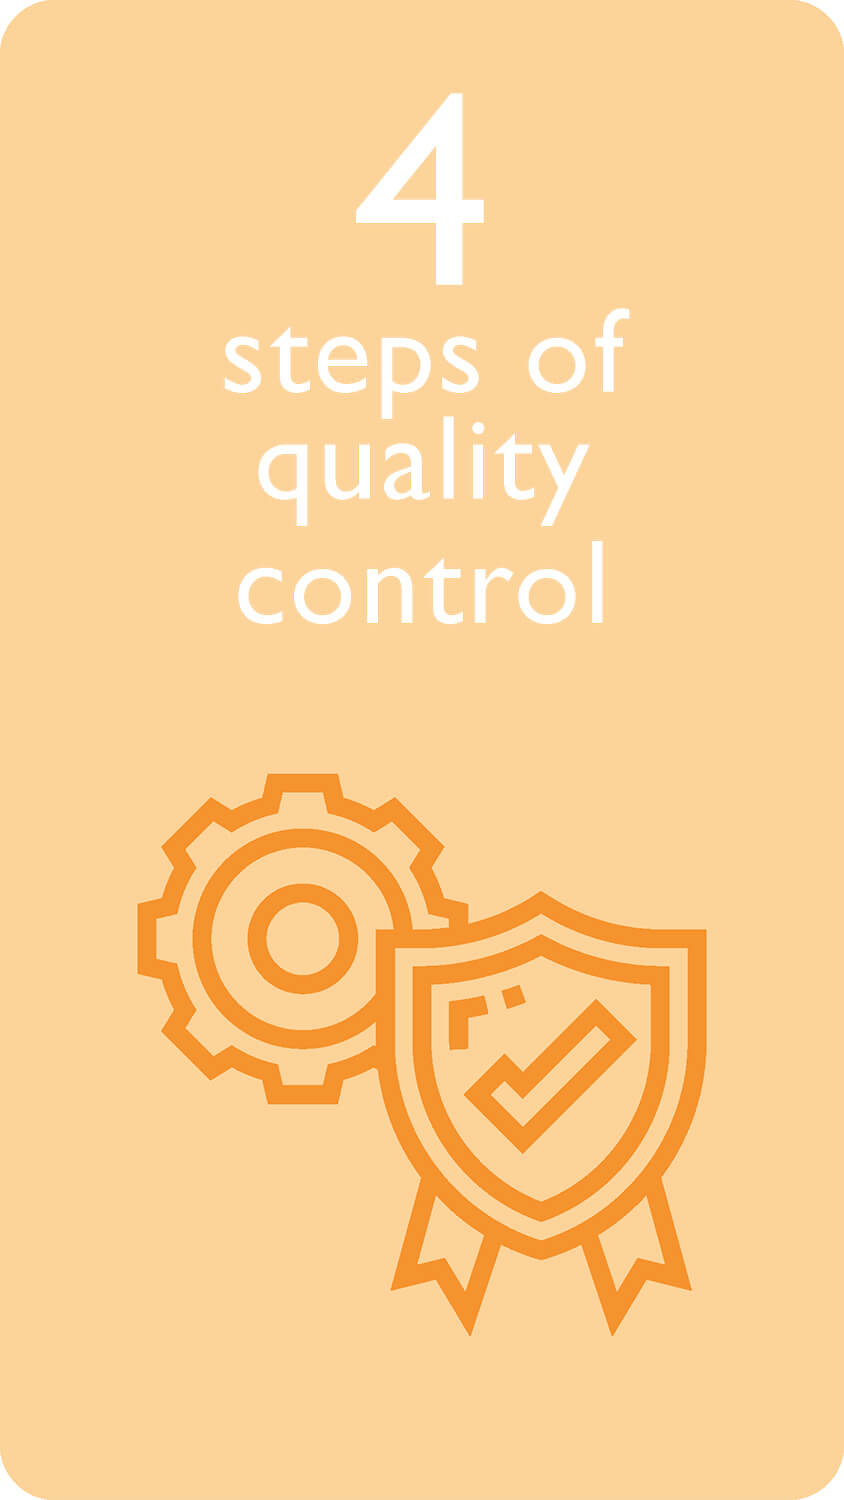 4 steps of quality control